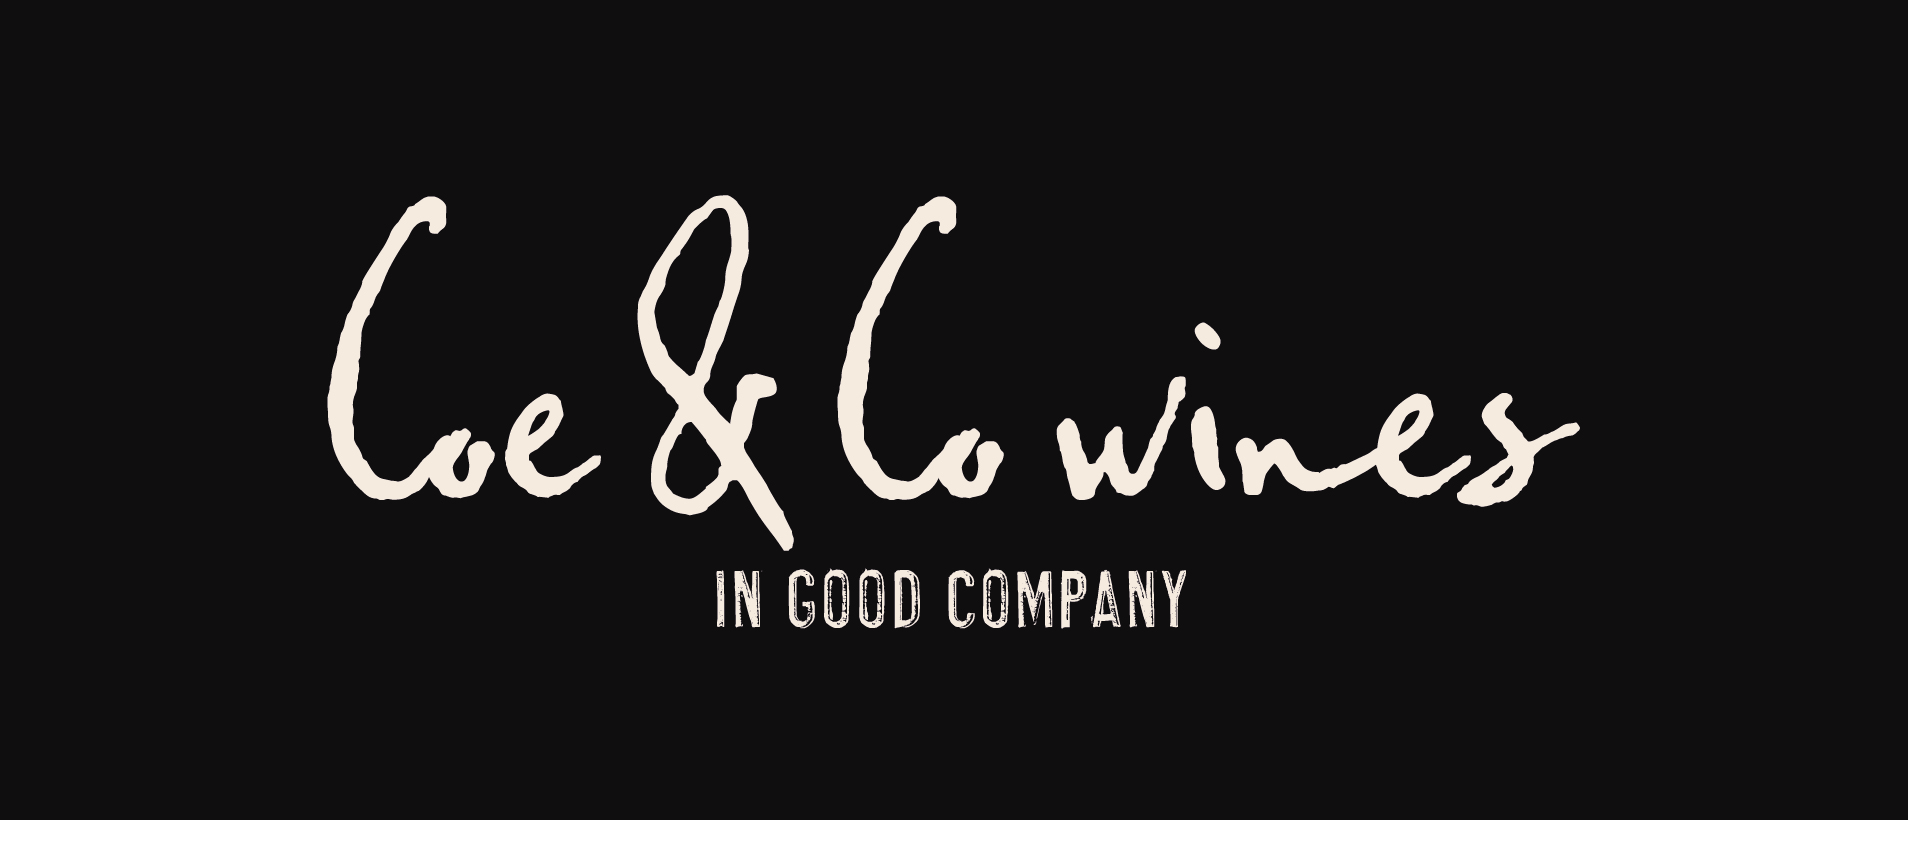 Attendees will have the opportunity to enjoy some local wine produced by Coe & Co Wines, from Cooba near Gundagai. Thank you to Jim and Karen of Coe & Co Wines for Sponsoring BIG STUFF.